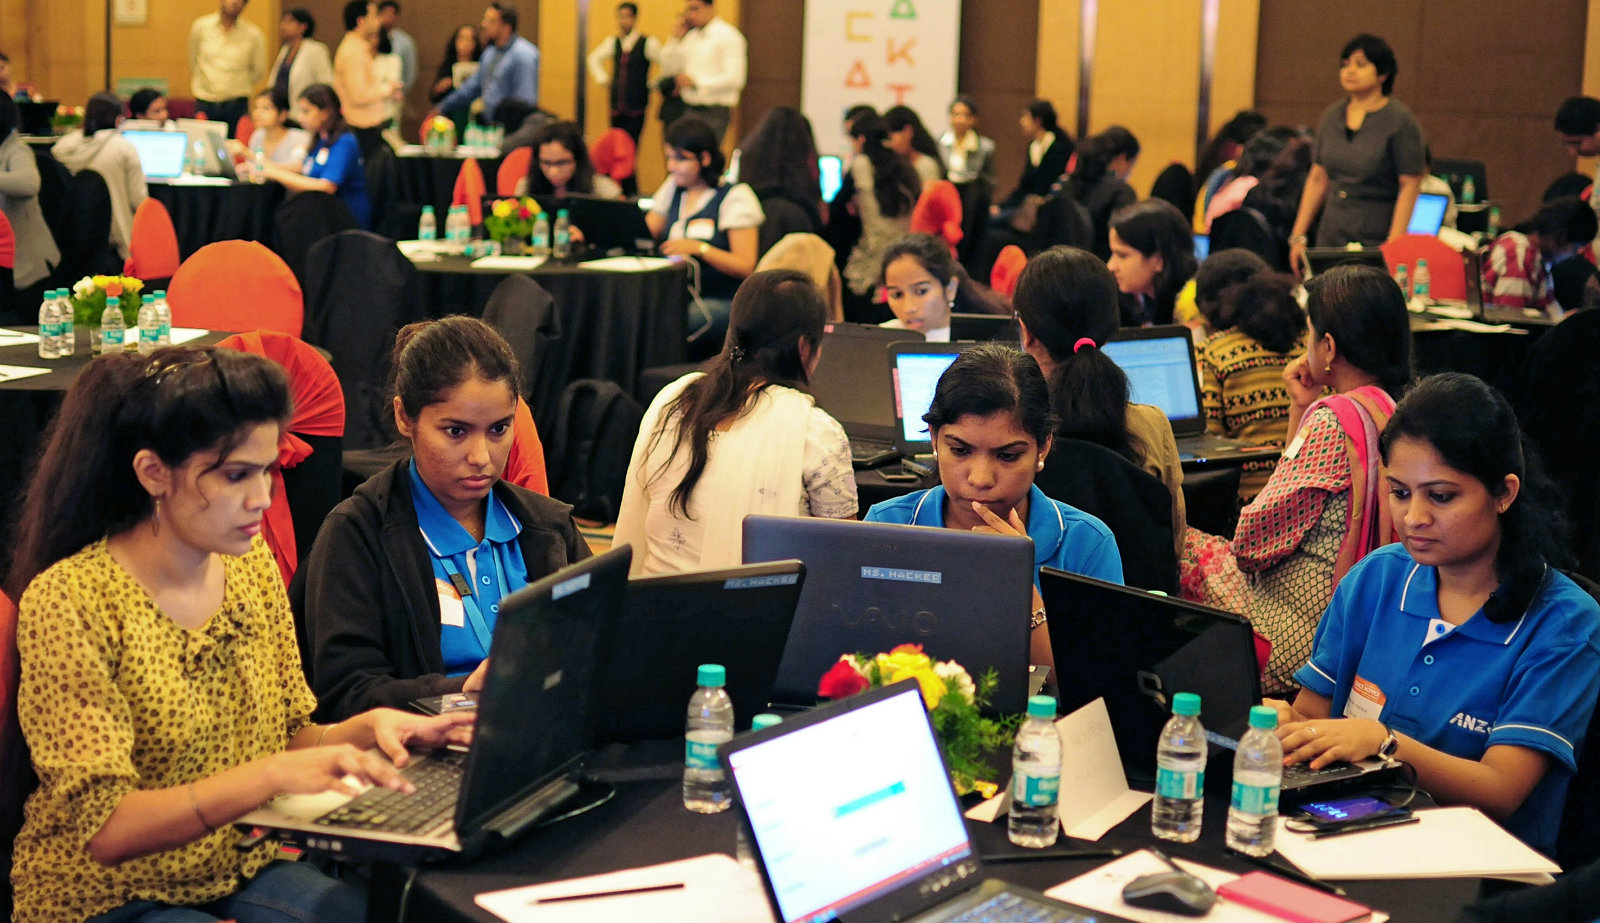 Women take part in a Hackathon as part of the Grace Hopper Celebration of Women in Computing, Bangalore, India, 19 November 2014. Over one hundred software professionals and students took part in the event themed 'Tech for Good' for ethical hackers, a day long coding event to build applications which could benenfit society.